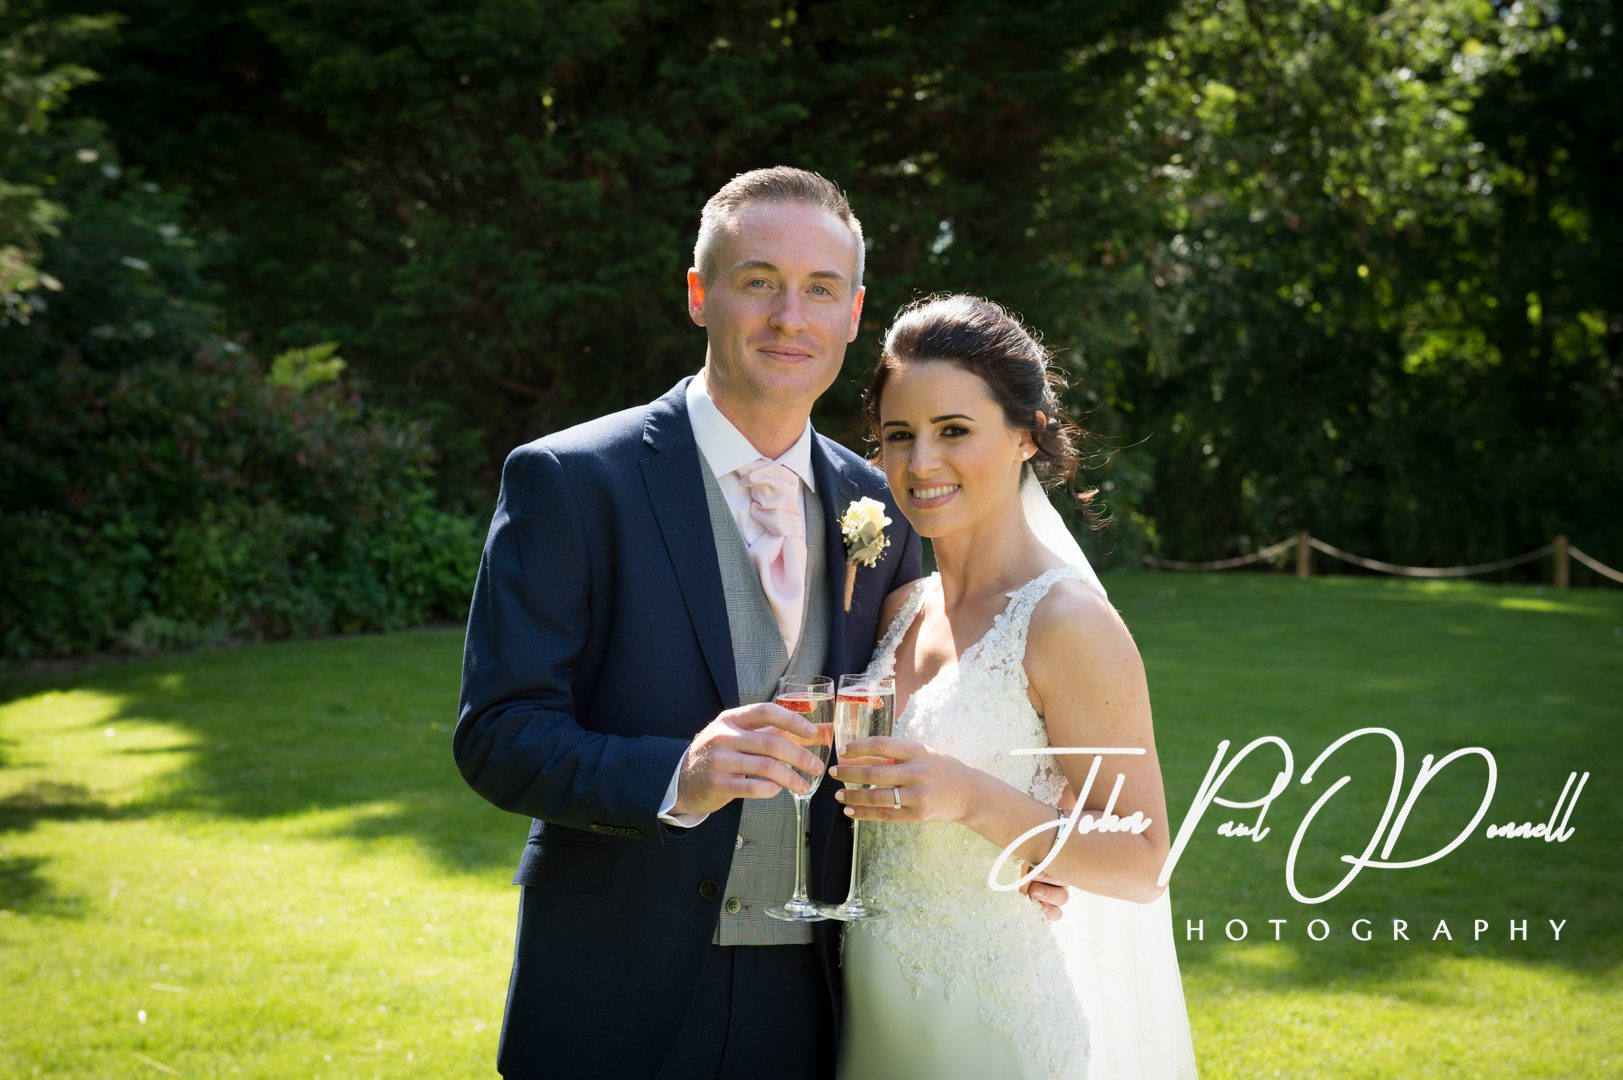 Sarah and Davids wedding at Sheene Mill Royston